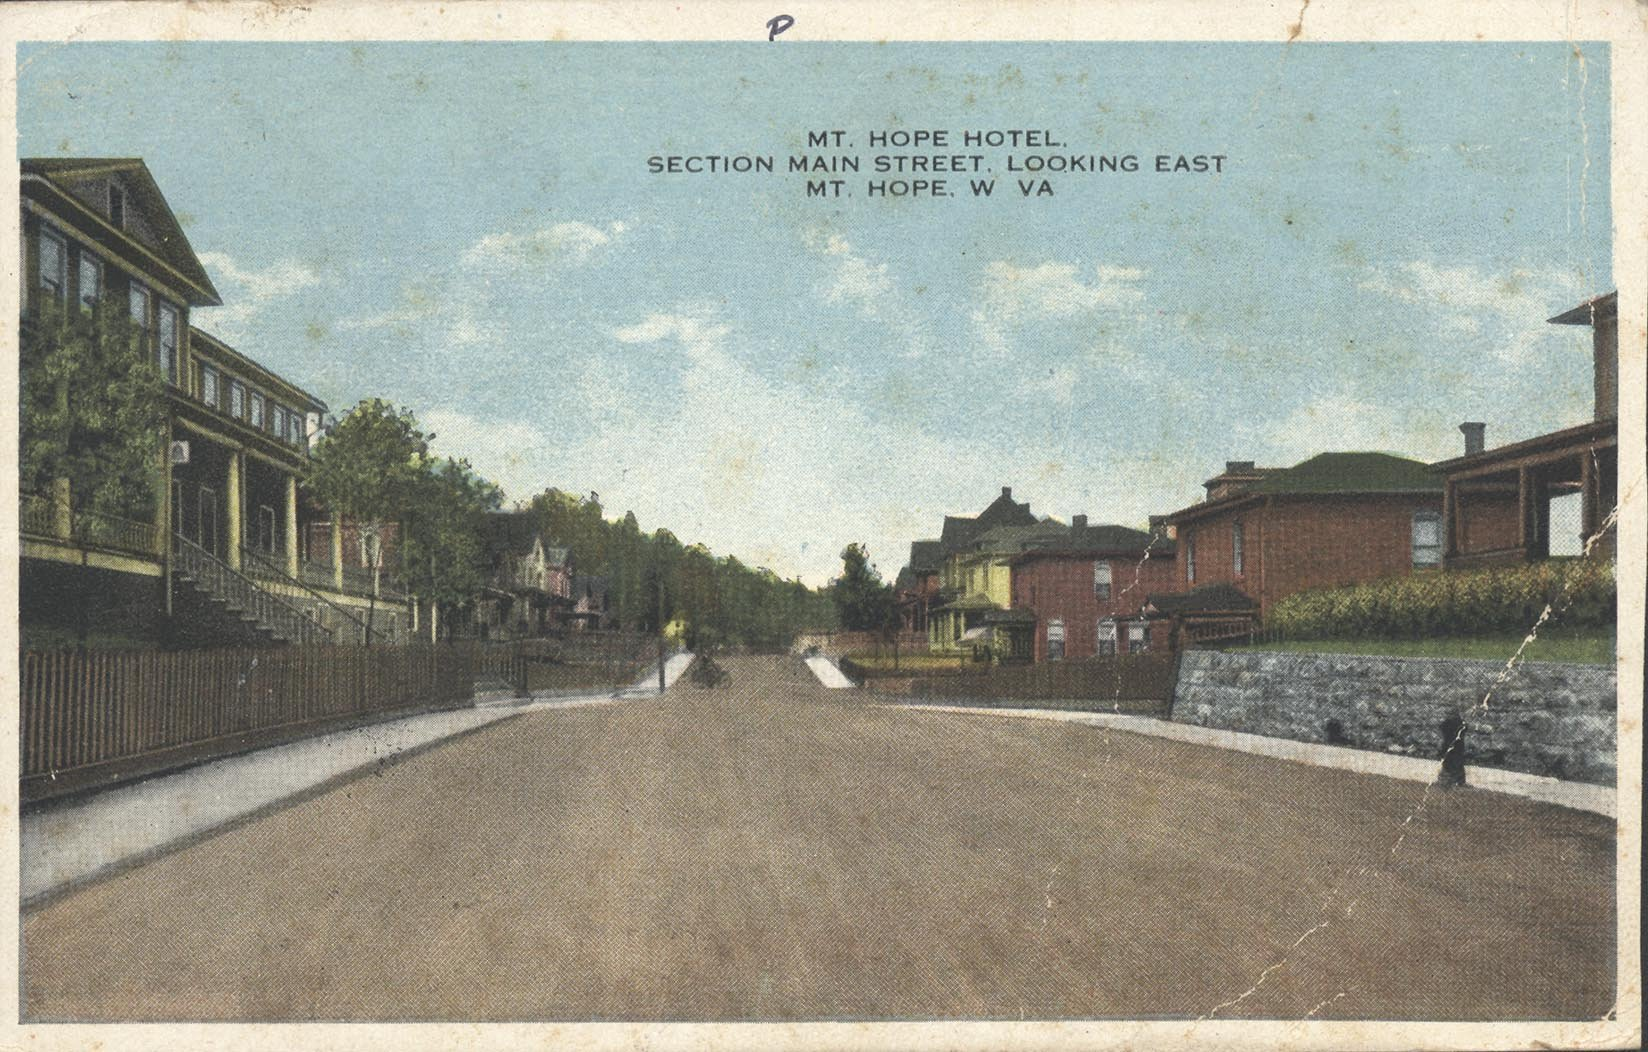 Post card of street view of the former Mount Hope Hotel (left) now known as the Mountainaire Hotel.  Notice how the porch is elevated away from Main St.  Picture provided by Marshall University, Rosanna Blake Library, Special Collections Department